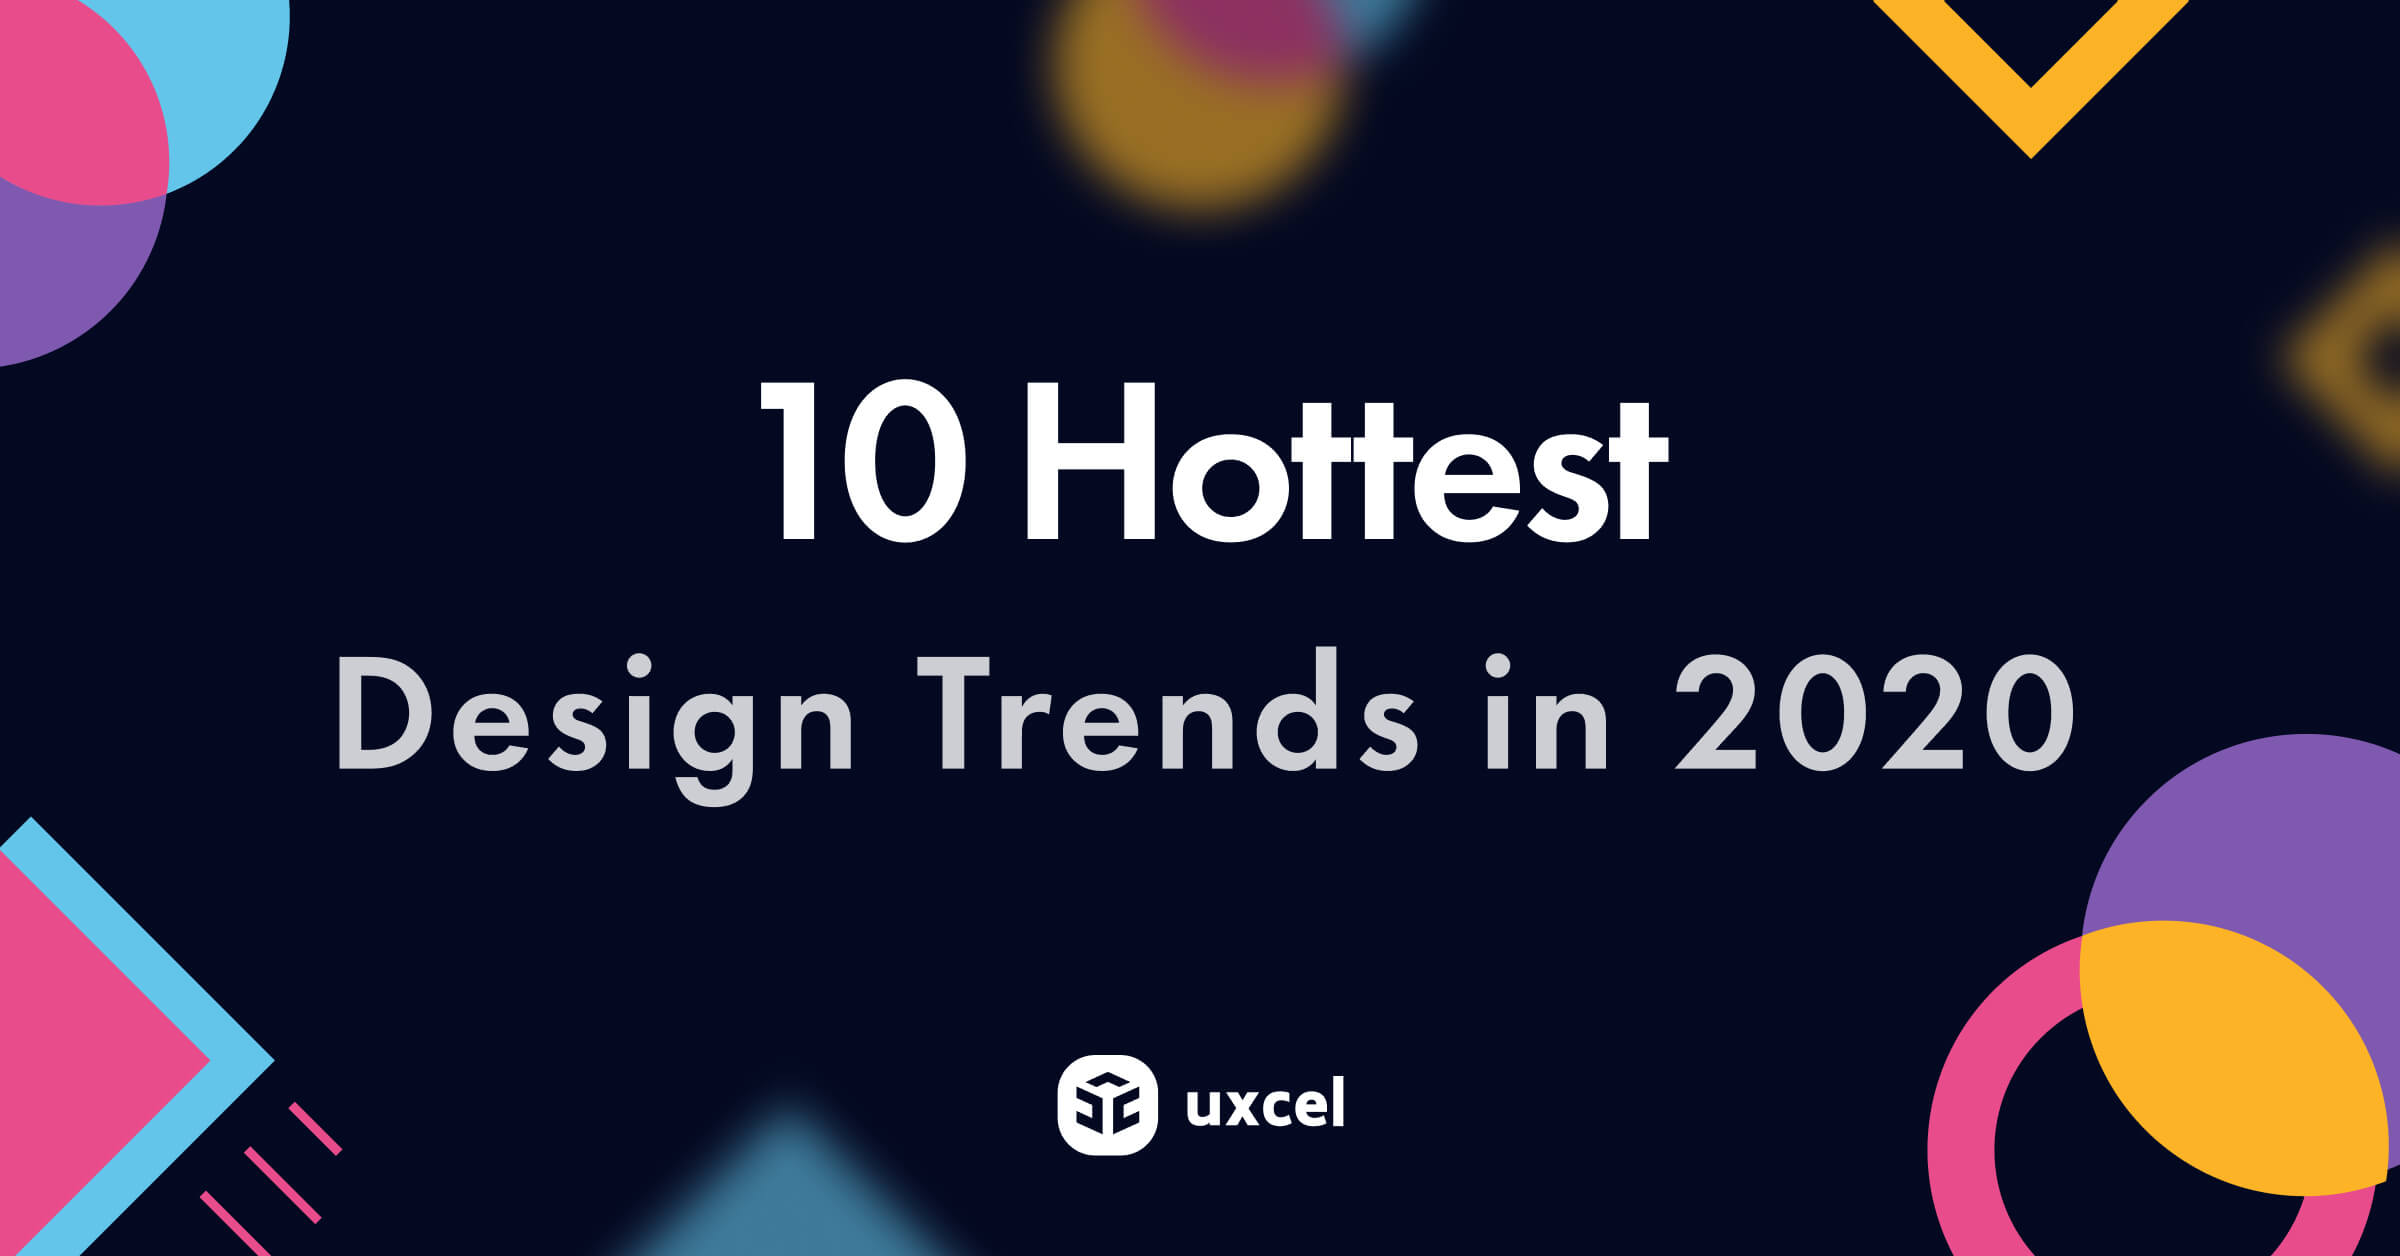 10 Hottest Design Trends in 2020